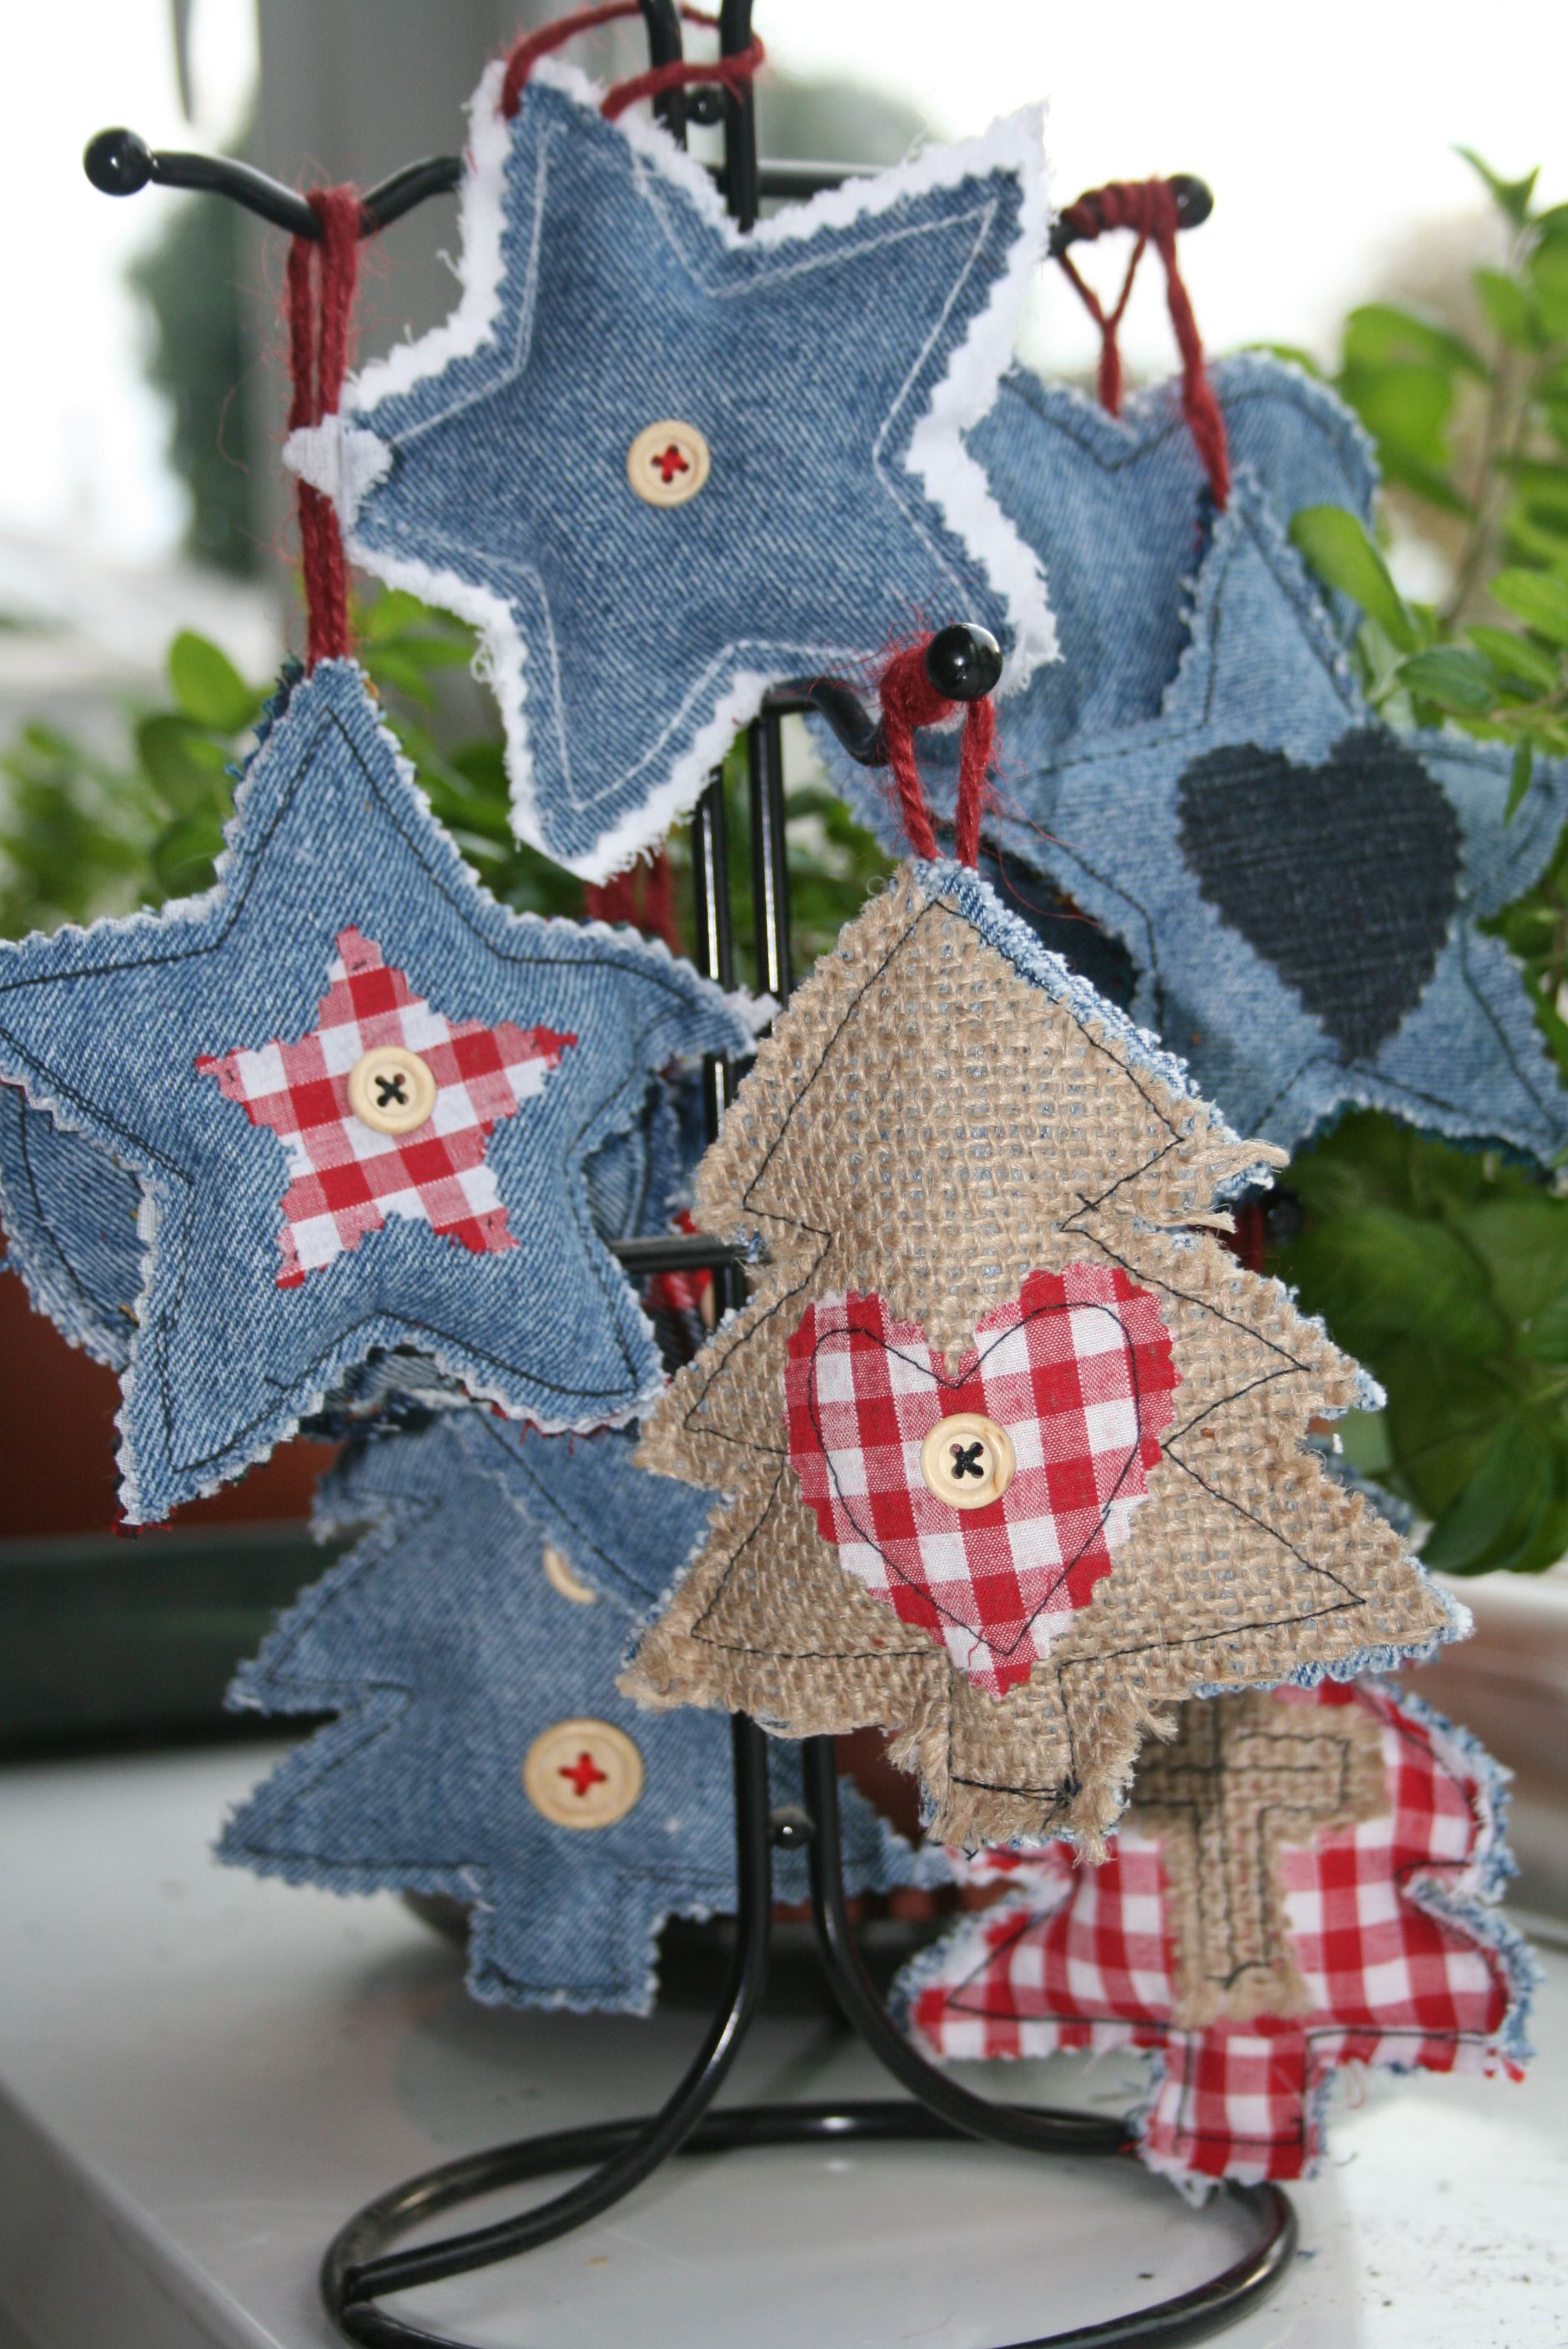 Homemade Denim Christmas Tree Decorations: I Have A PILE Of Old Jeans That  We Can